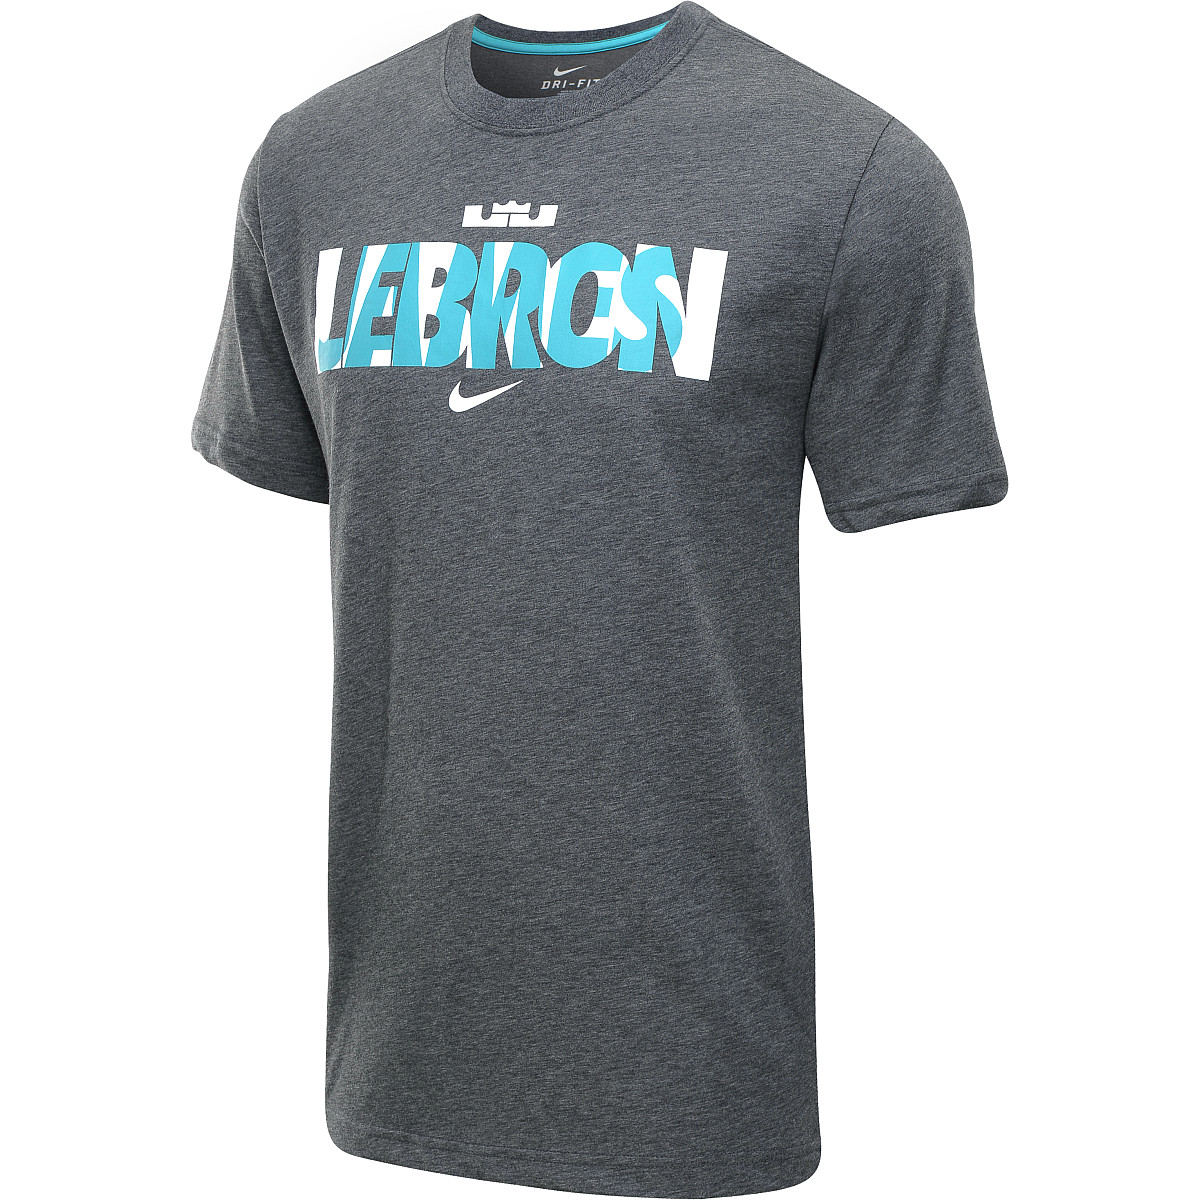 NIKE Men's LeBron James Short-Sleeve Basketball T-Shirt